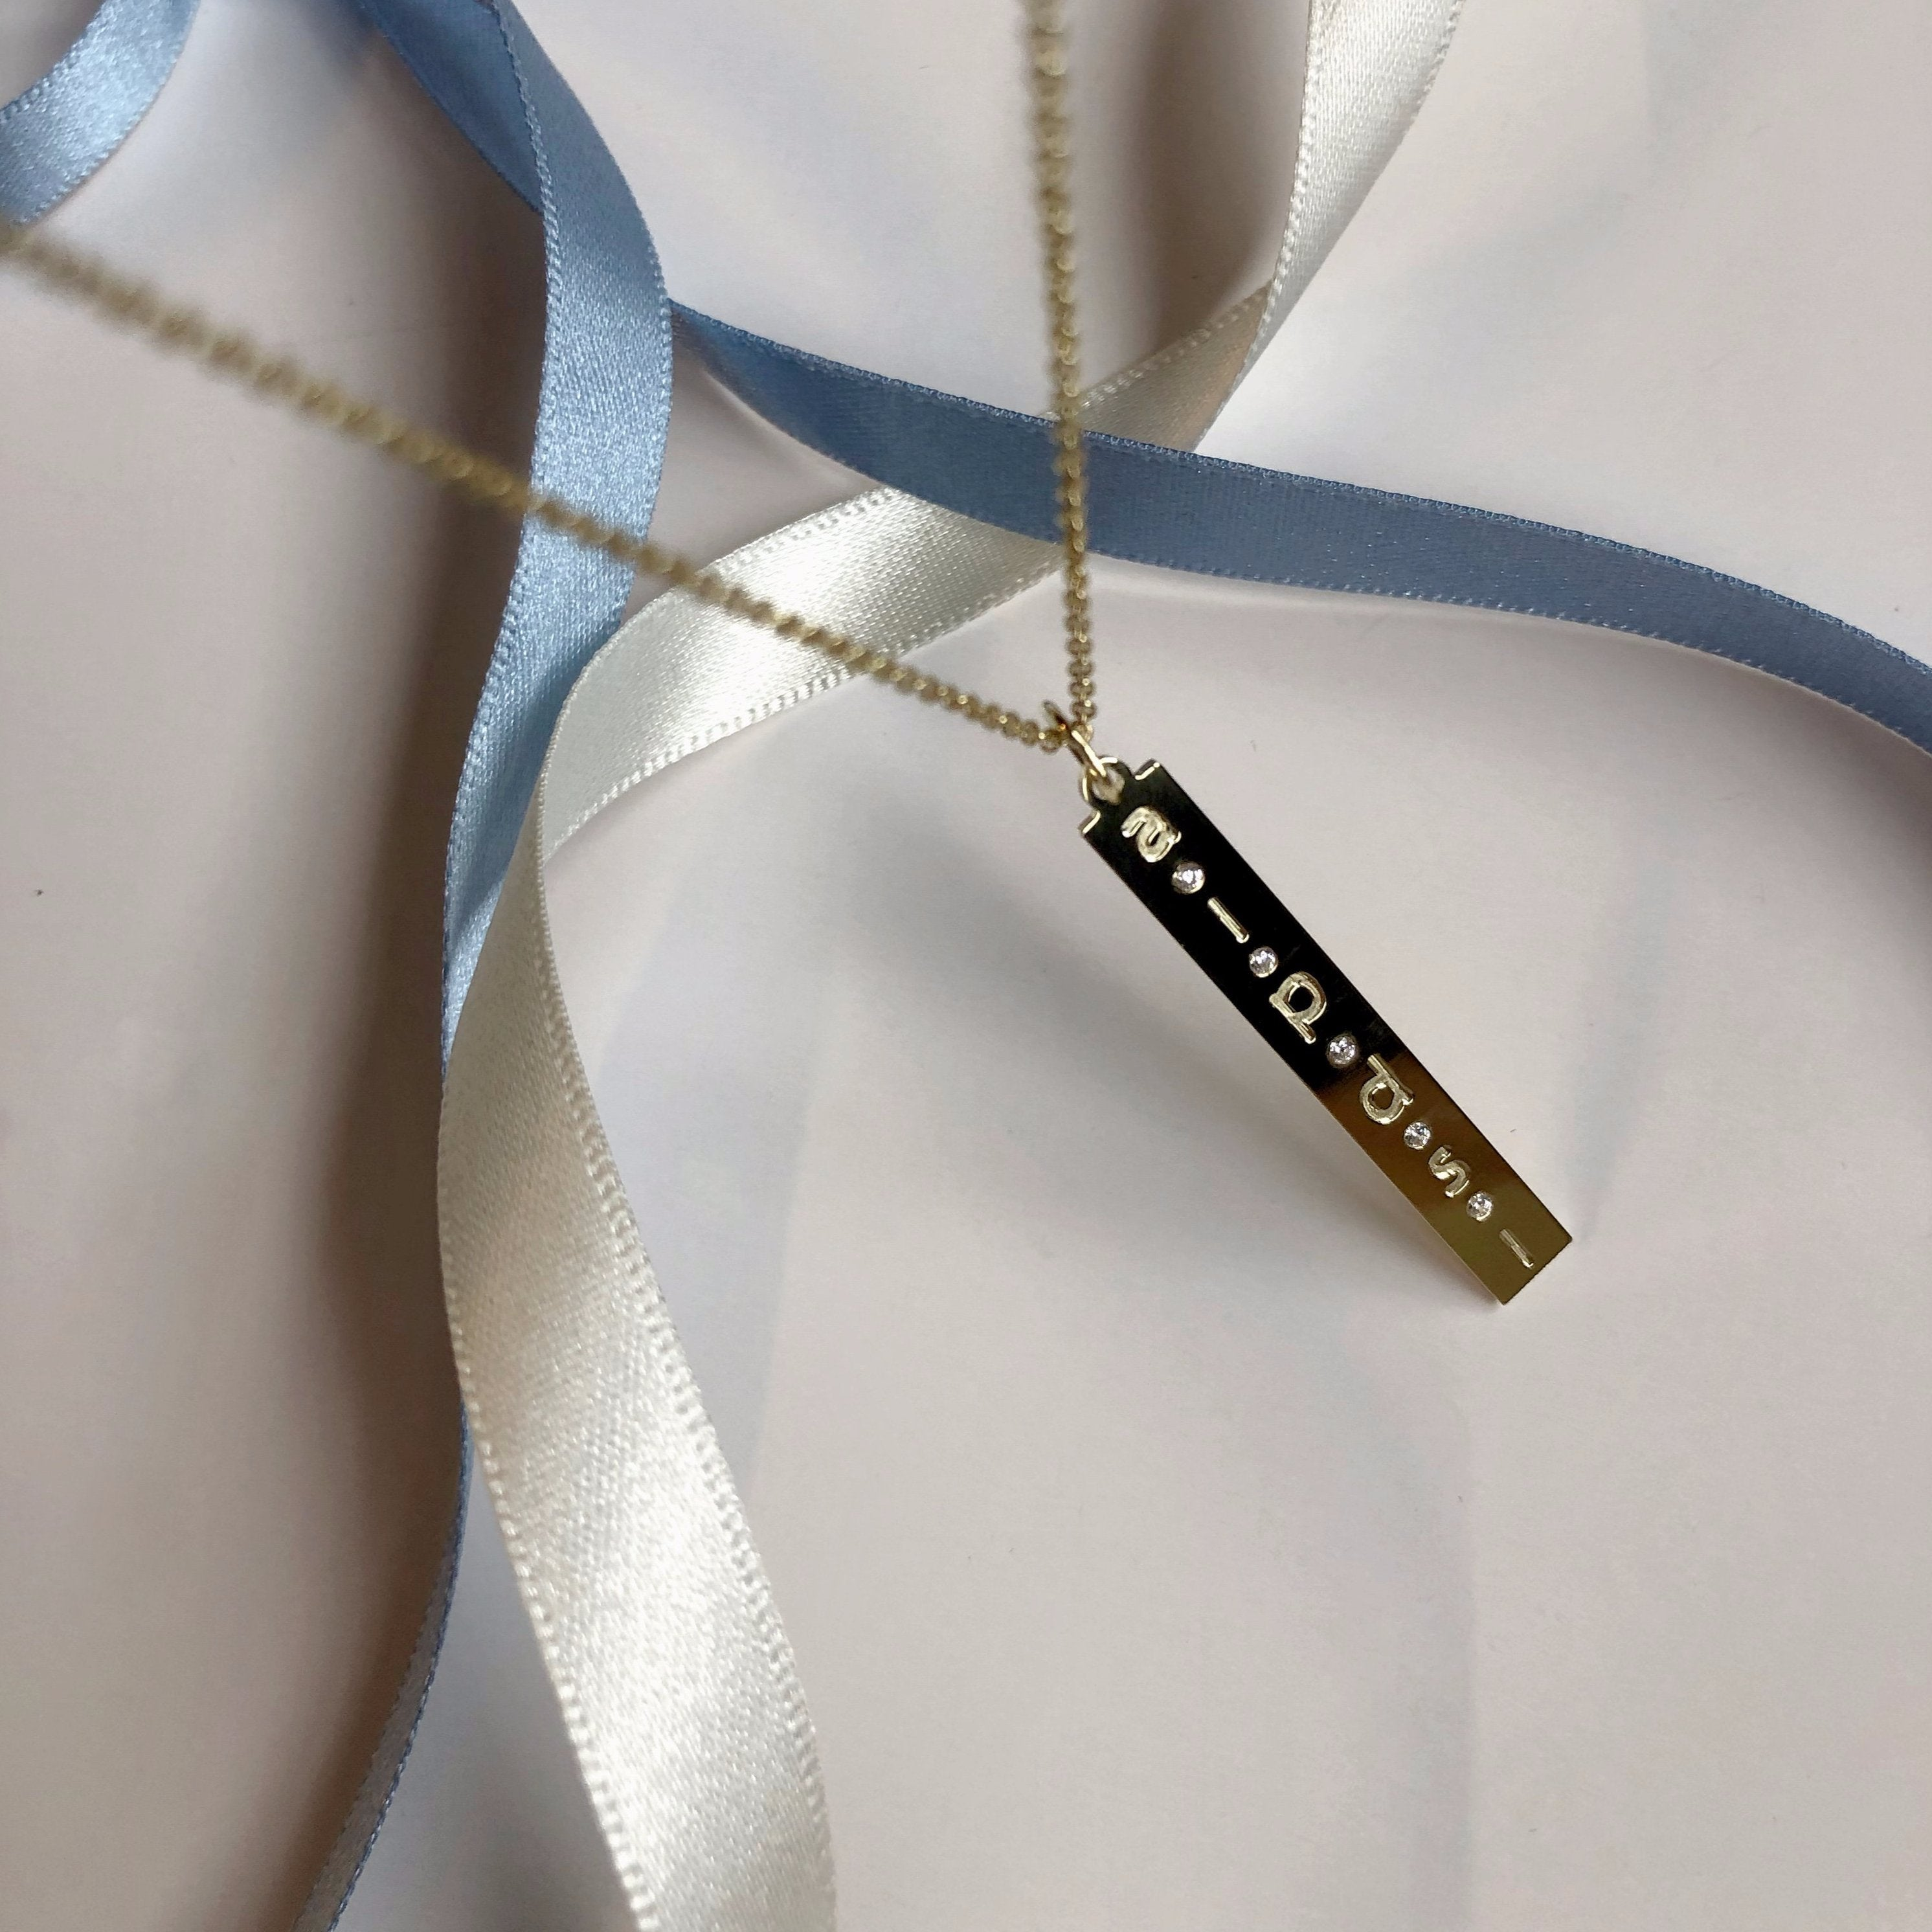 LE TAG necklace - BYVELA designer jewellery in silver and gold